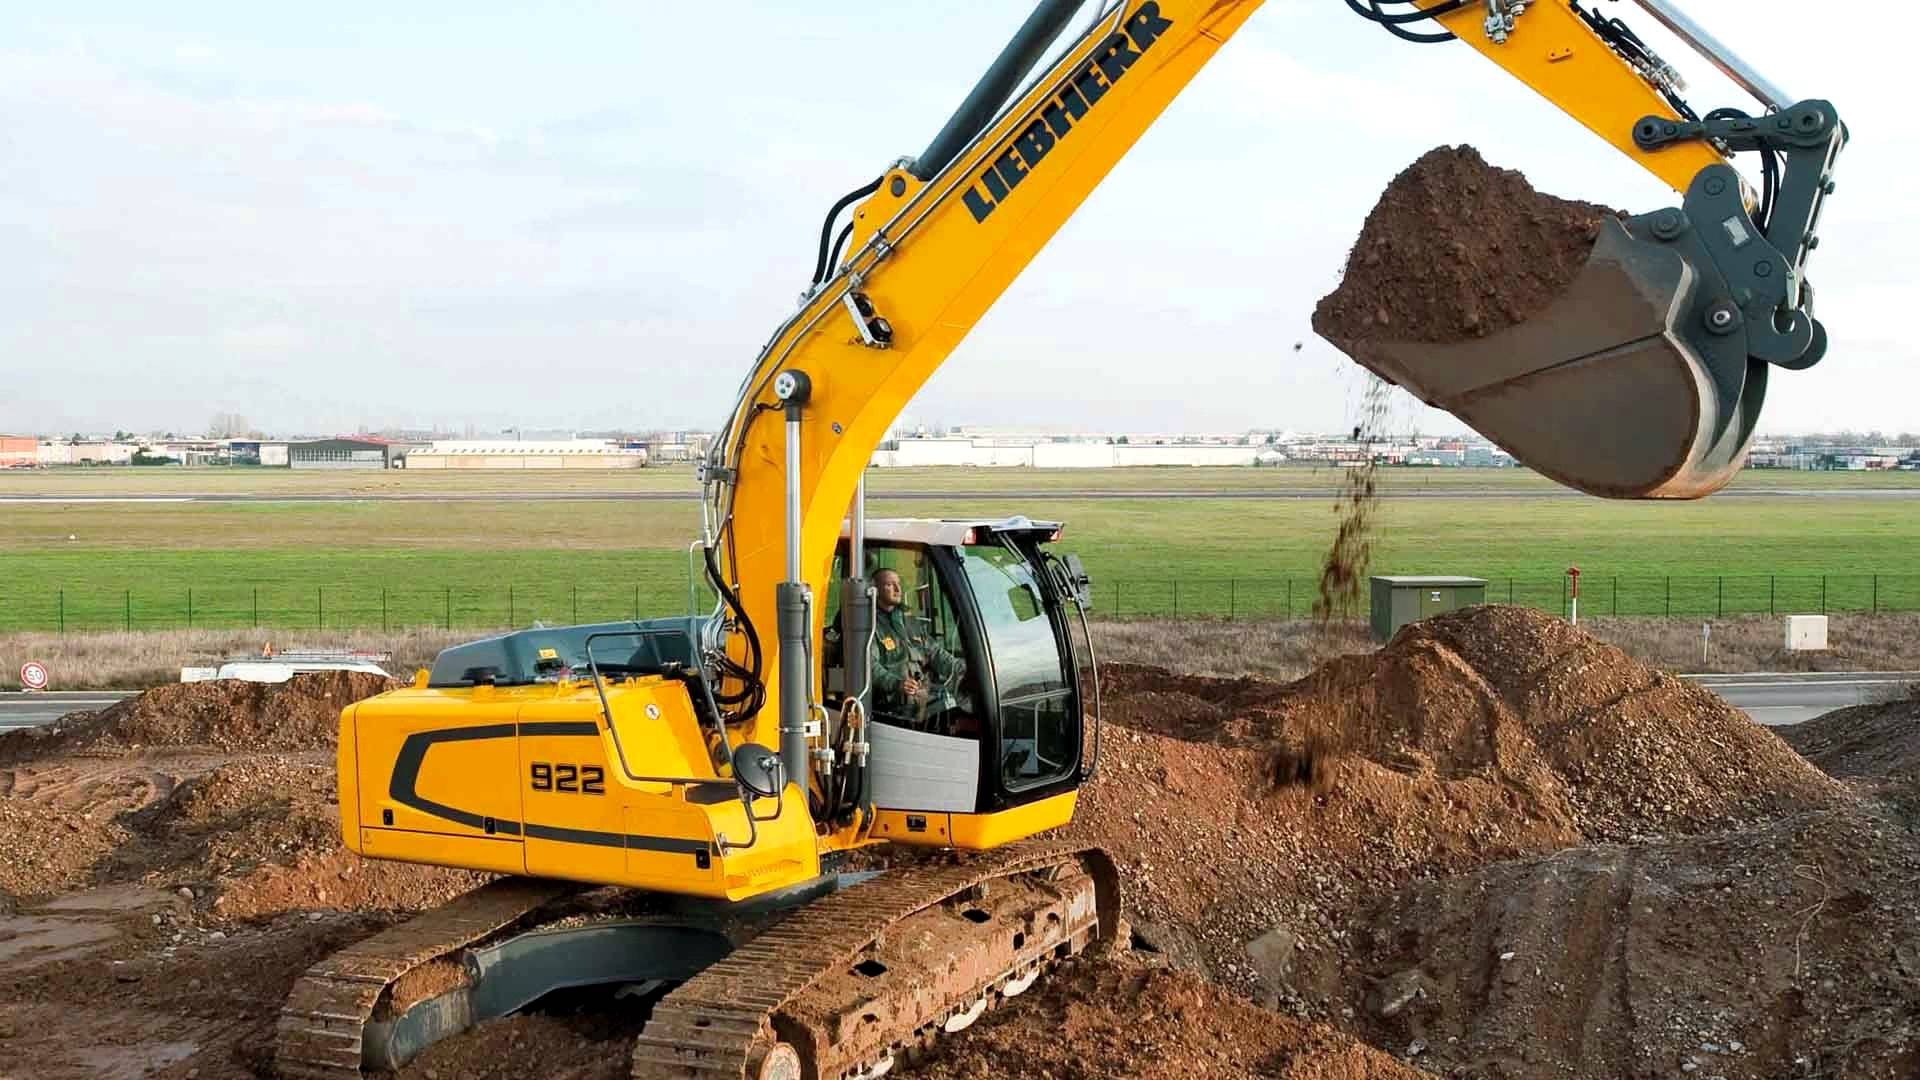 How will you Take Care of Dozer? An Earthmoving Equipment